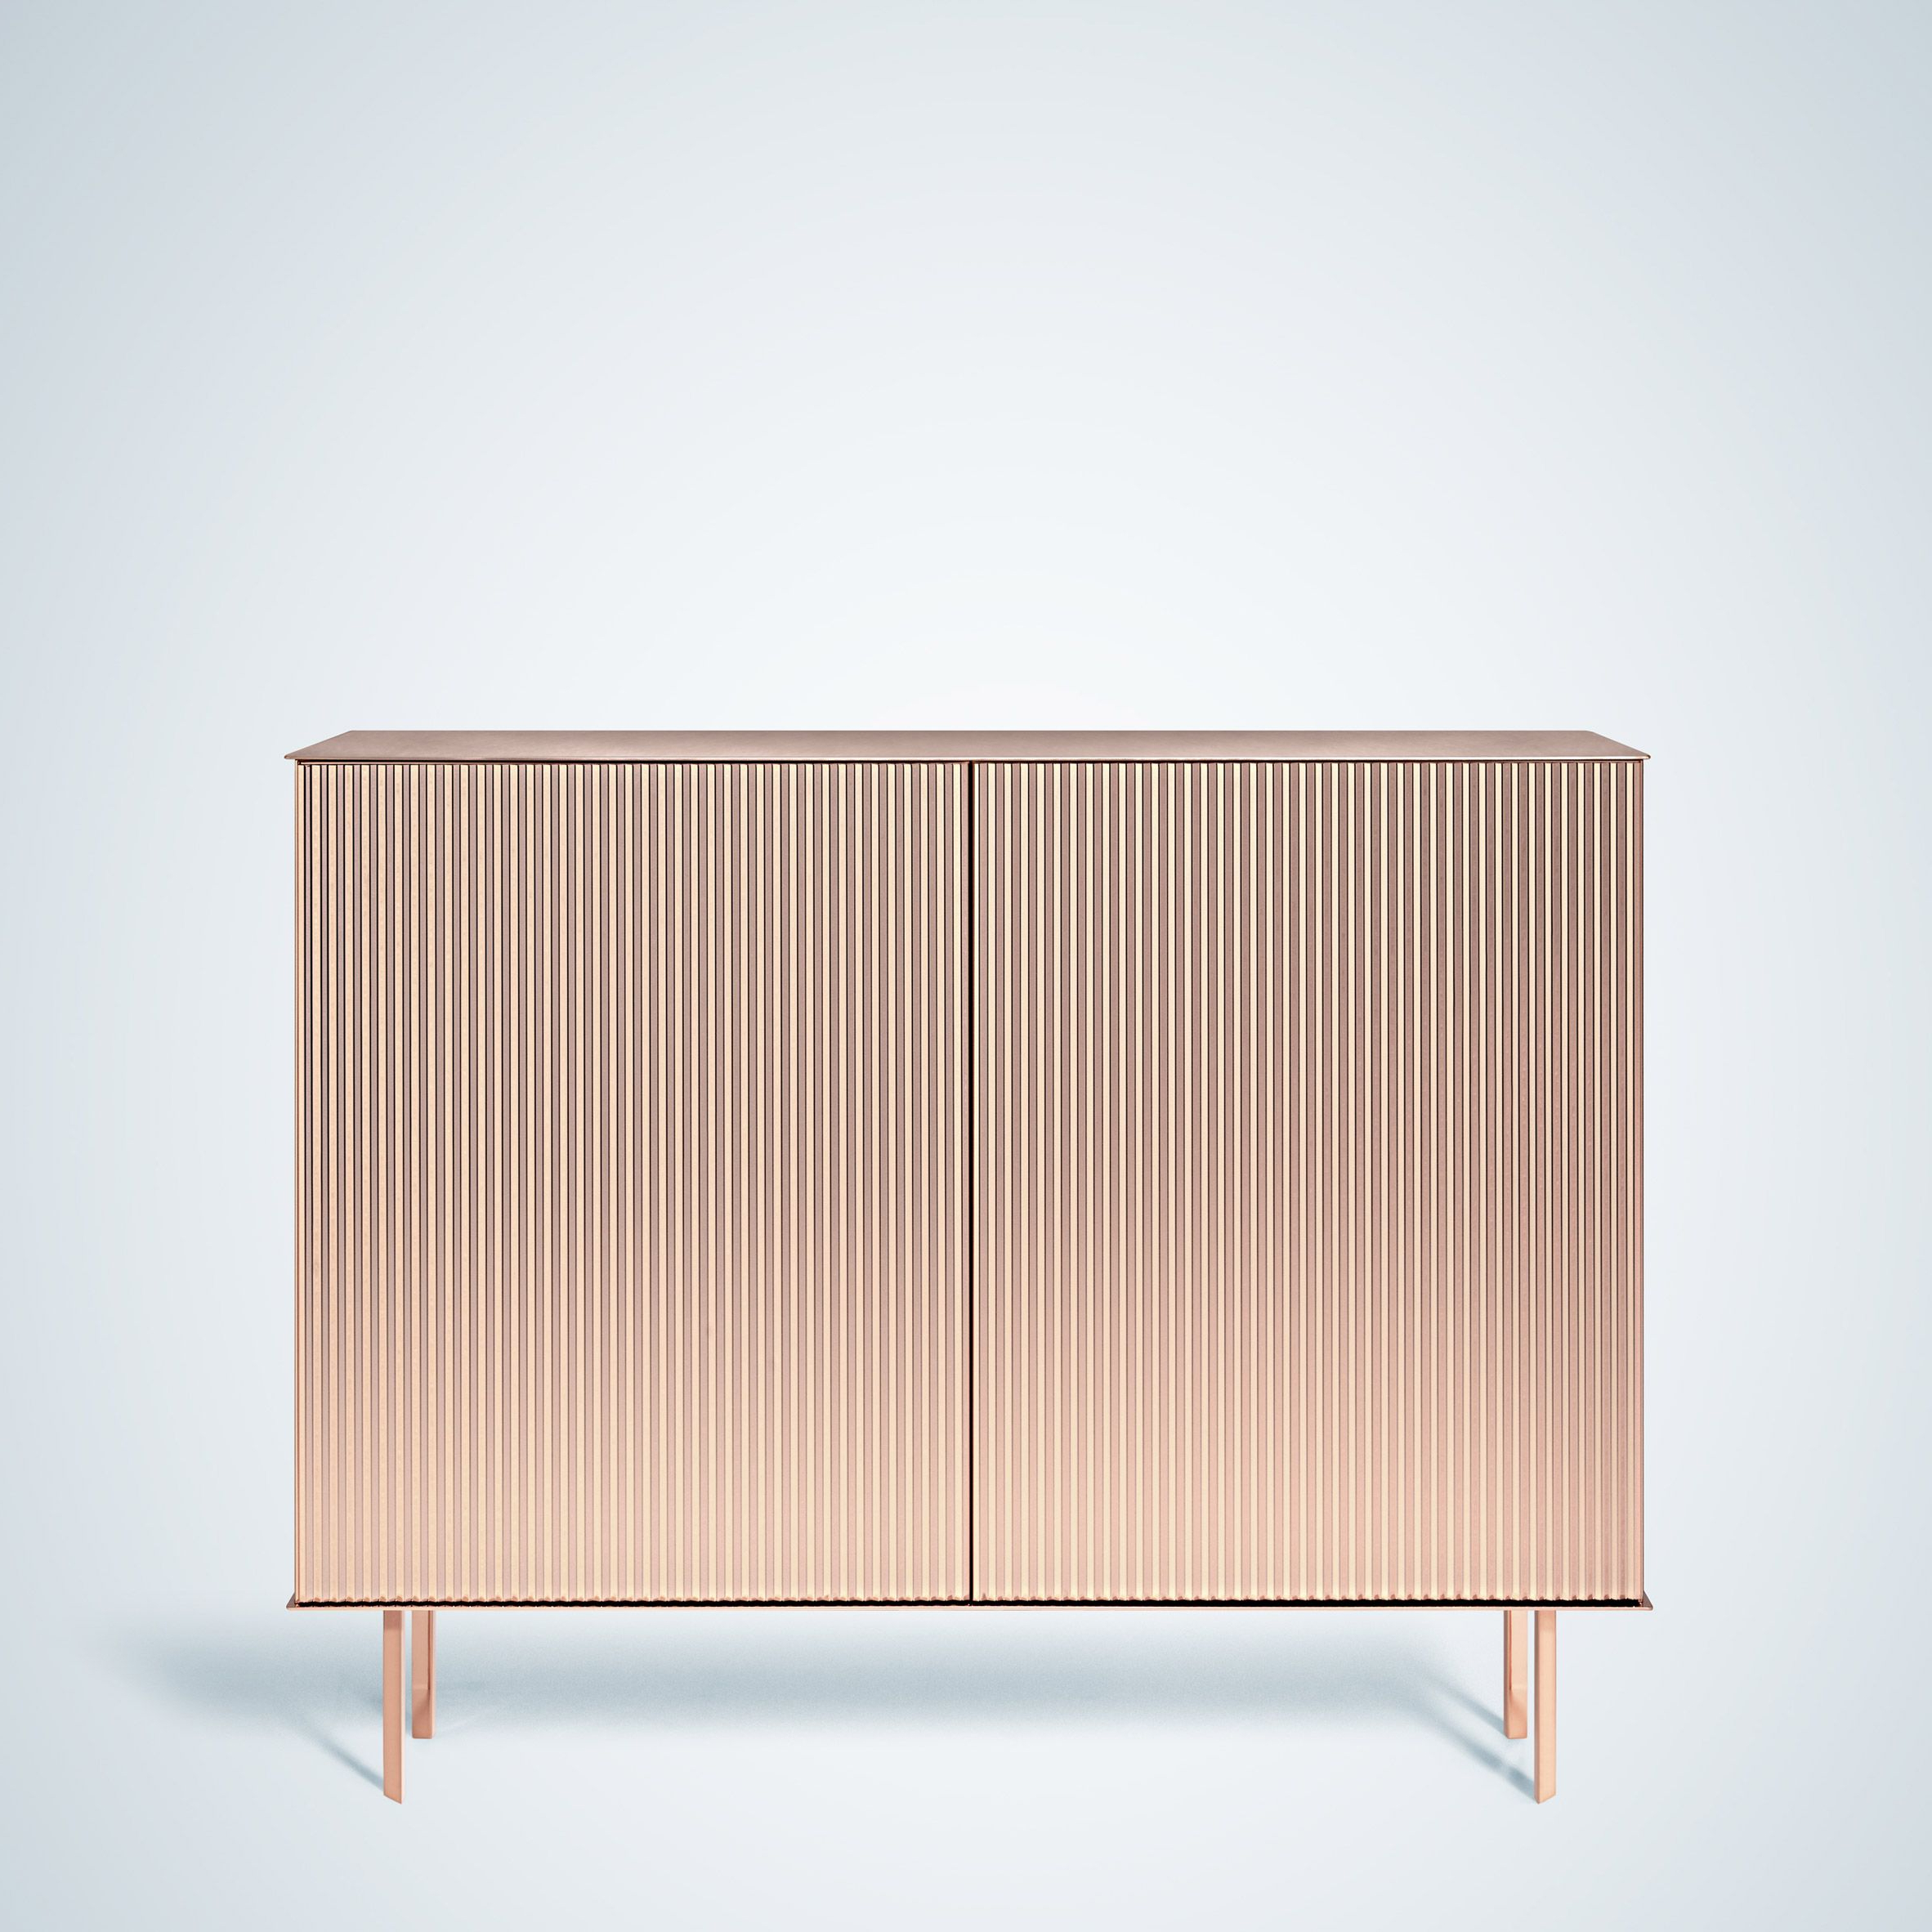 Newest Italian Metal Brand De Castelli Worked With Seven Female Pertaining To Castelli Sideboards (View 16 of 20)